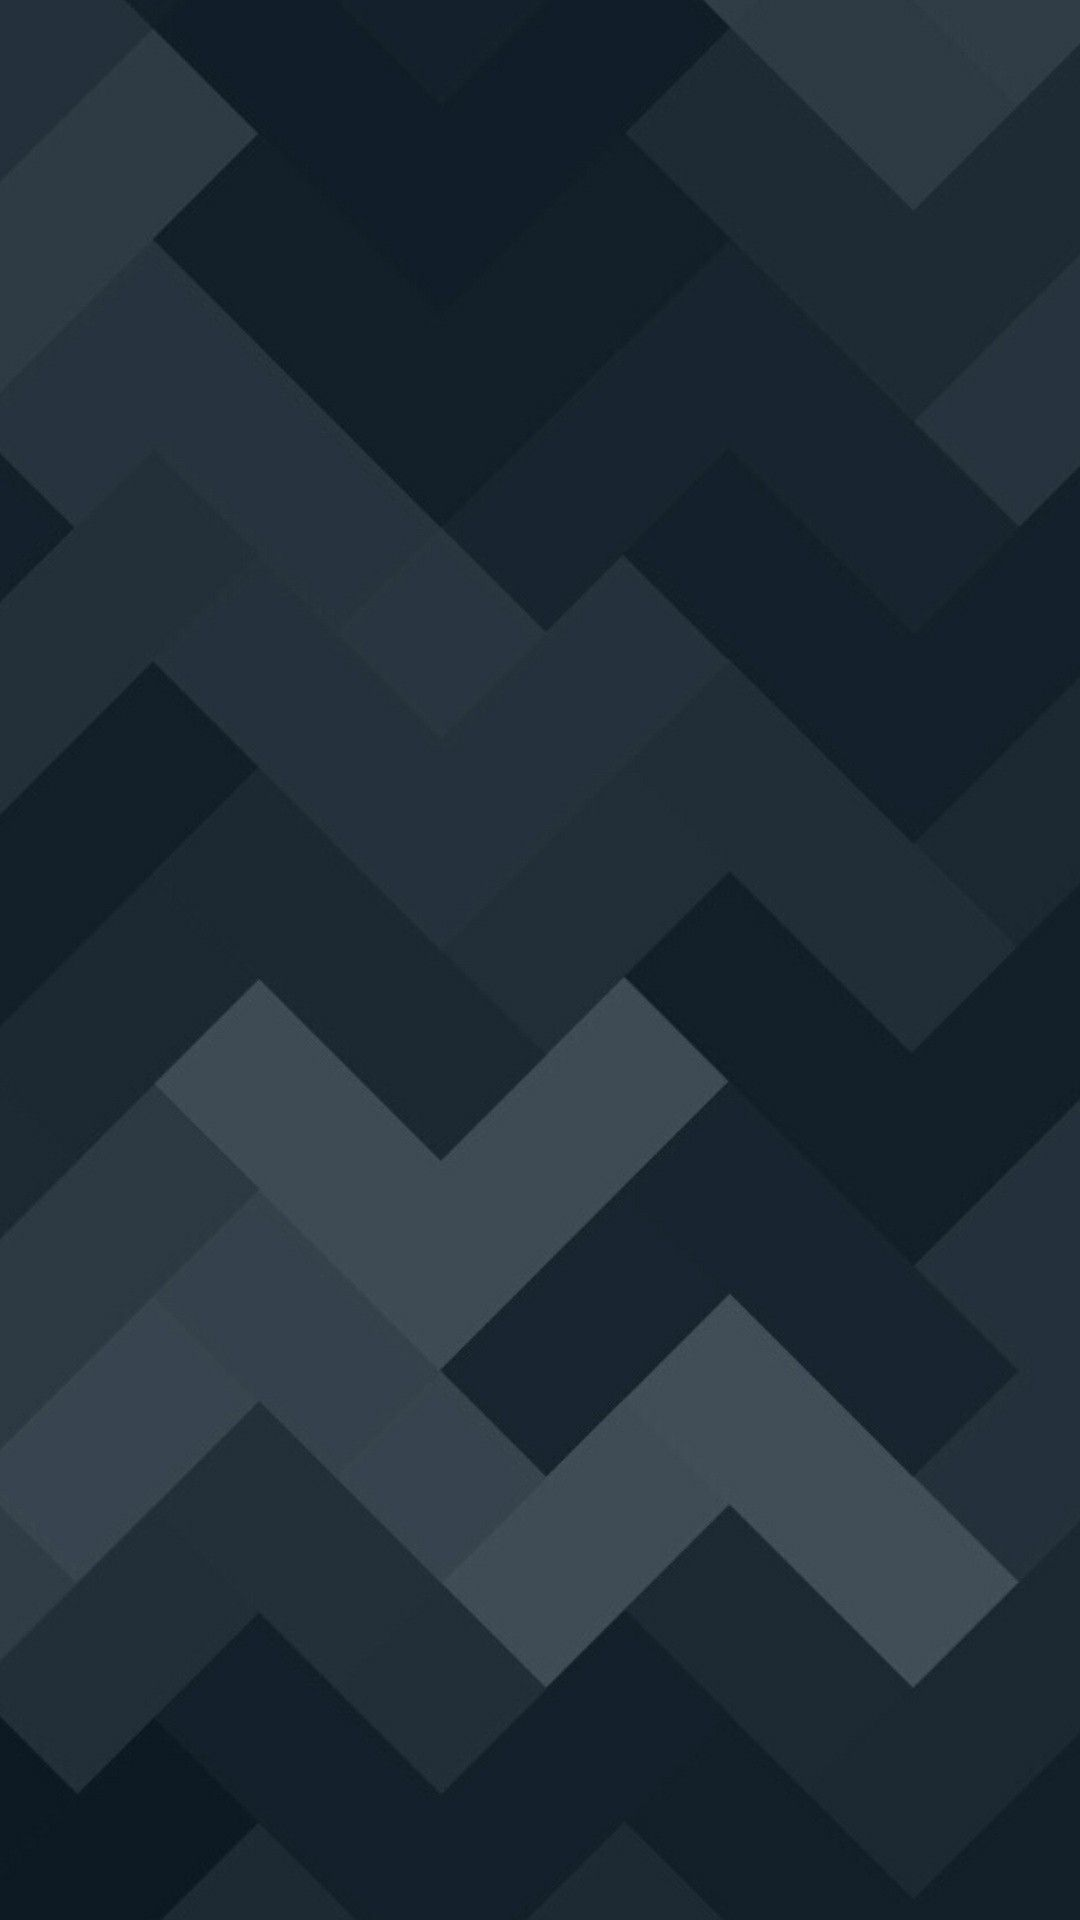 Great Wallpaper Home Screen Pattern - 48f6cff424fc3592a4ecd4b17d2cc323  Image_92240.jpg